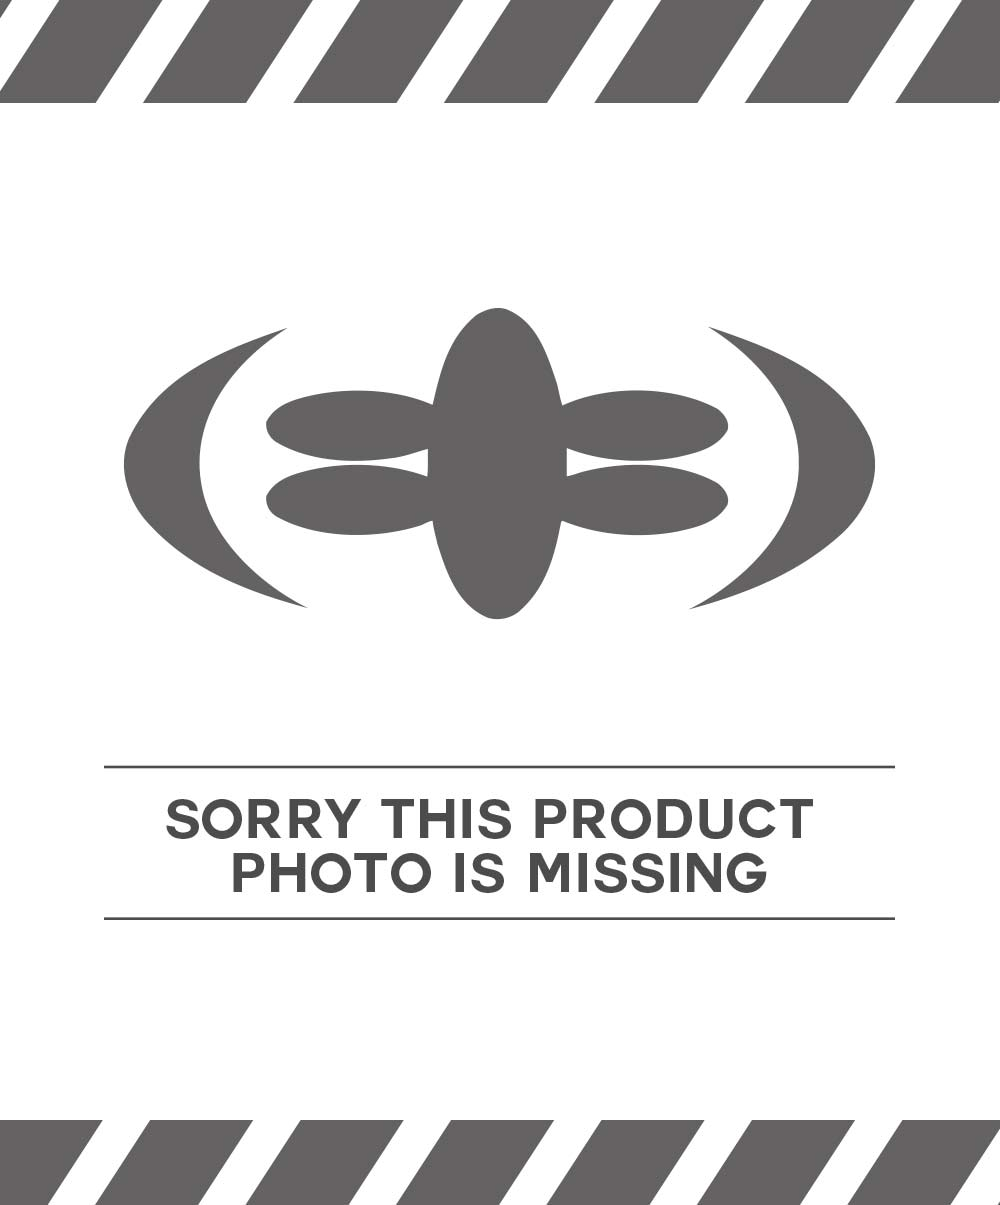 Thunder. 147 Goldstrike Light Truck. Green/Black.